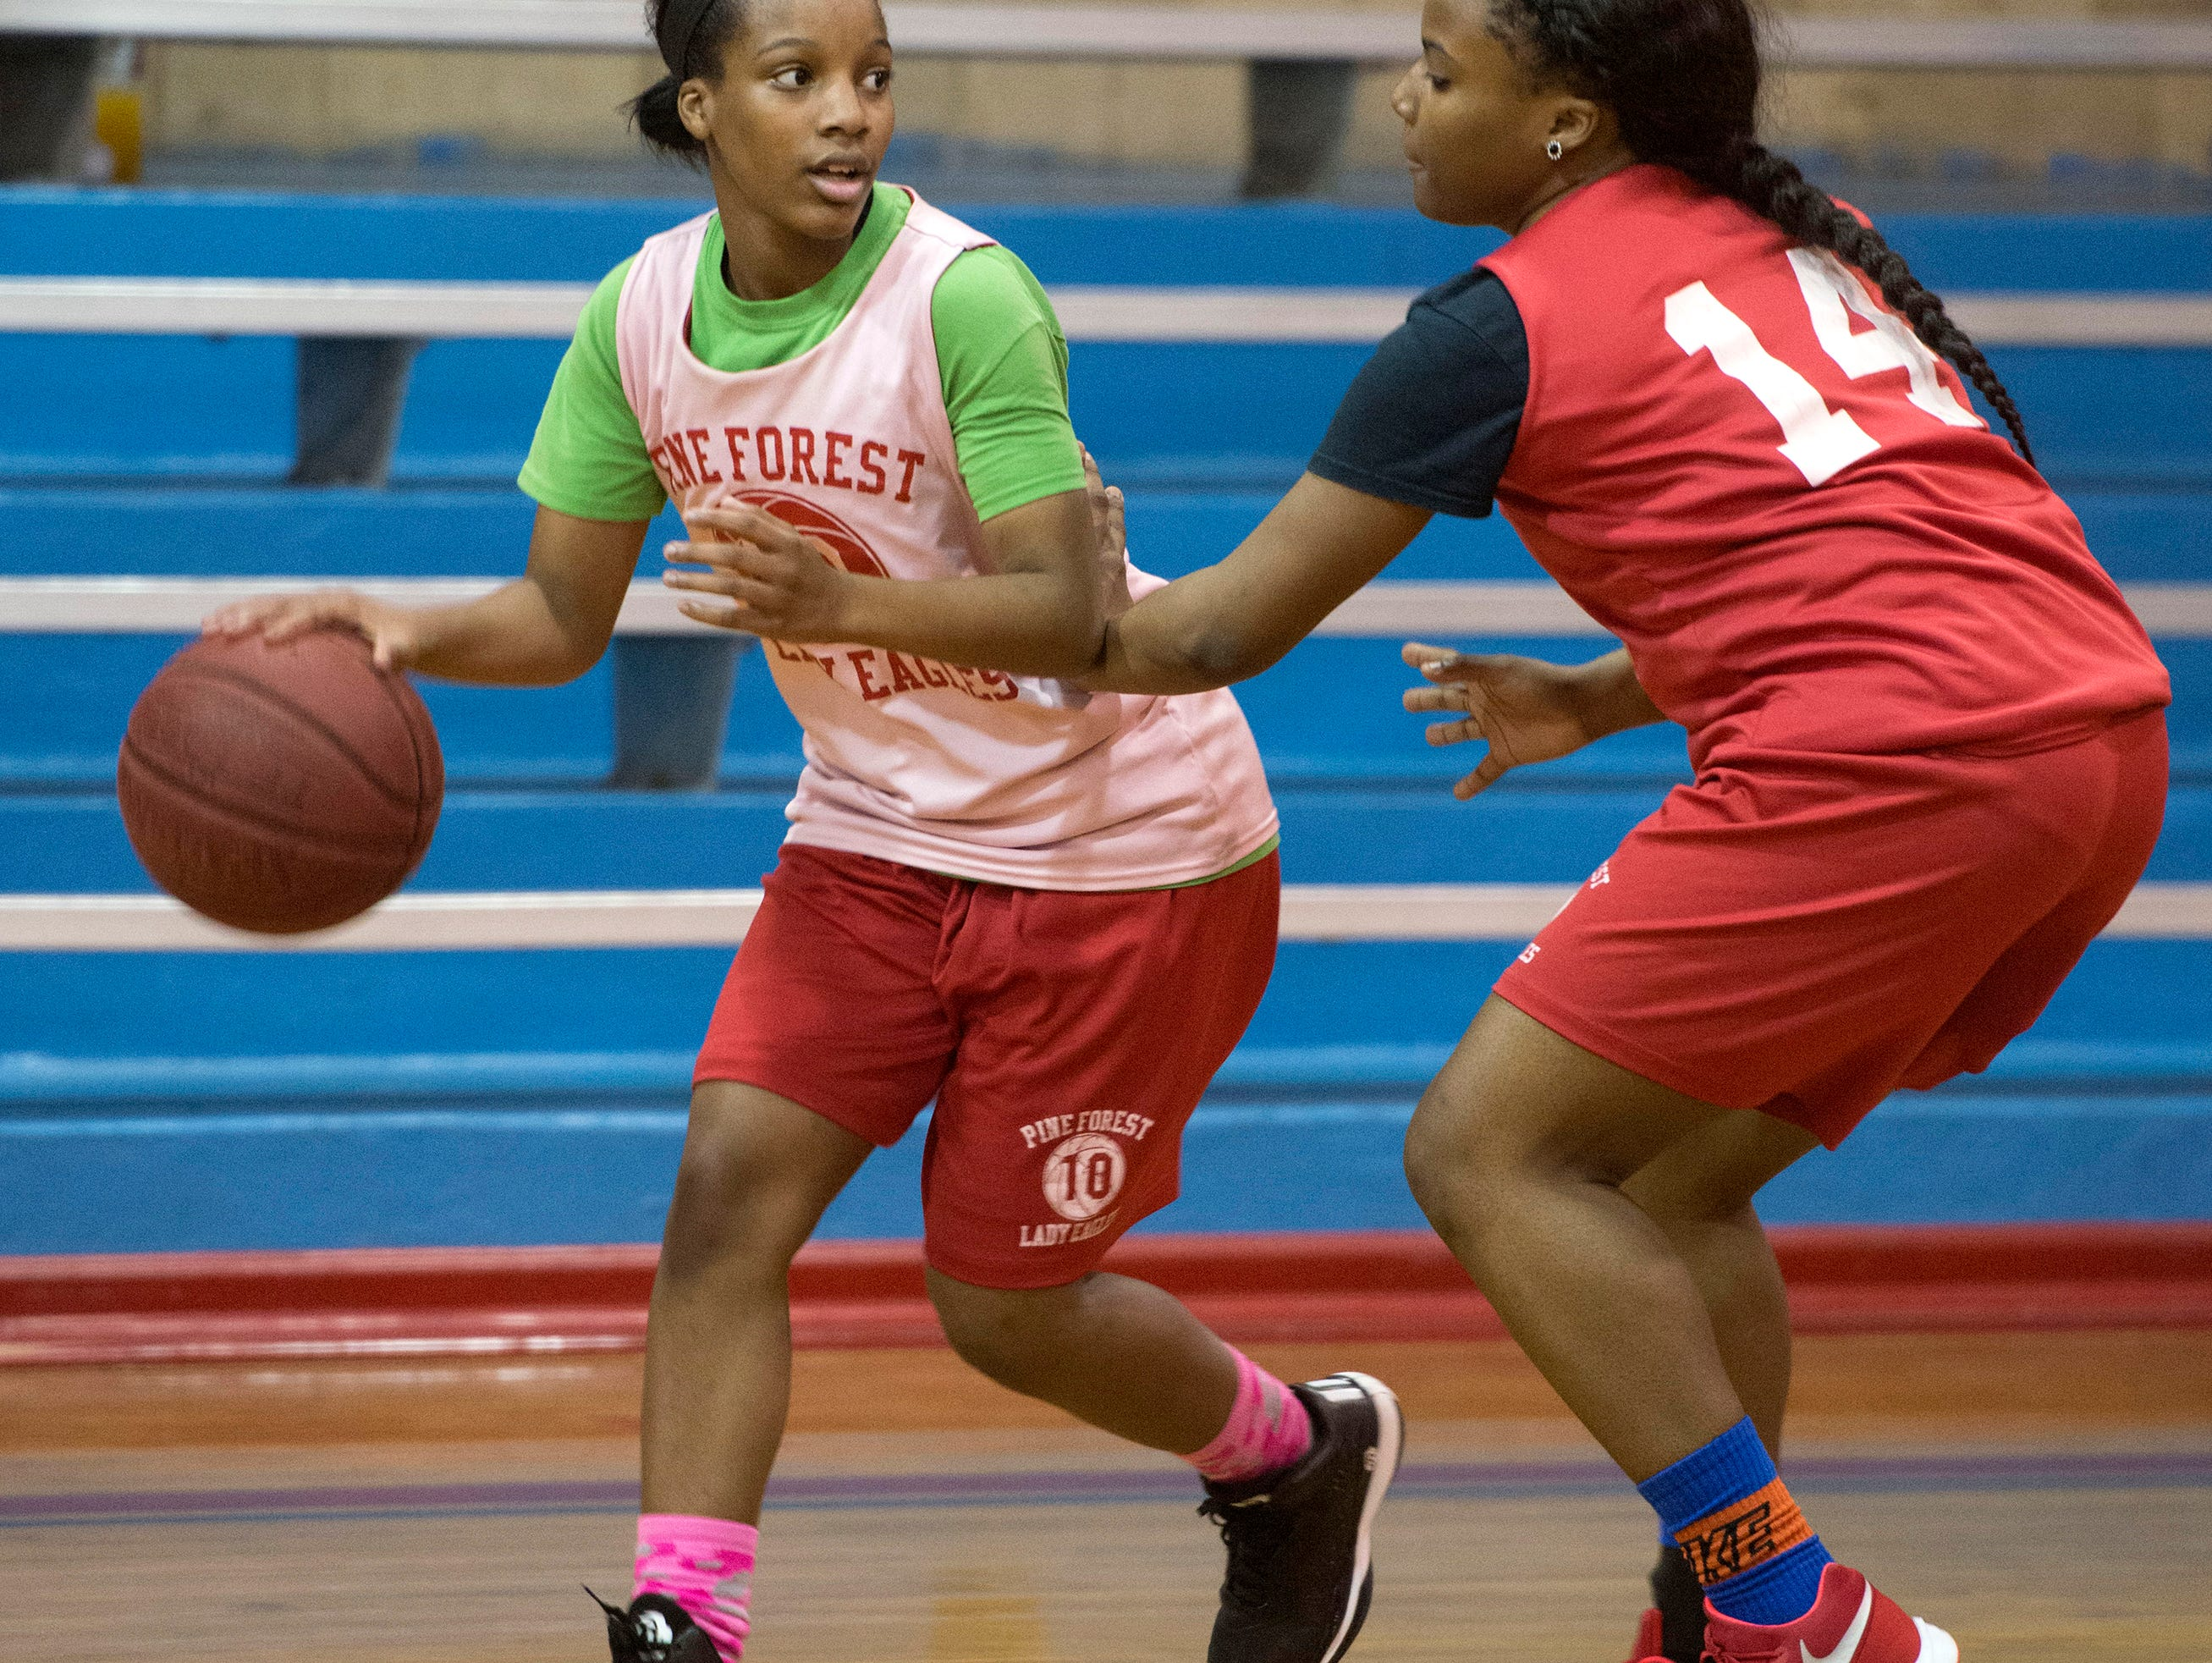 Kendauria Brooks, (No. 10) left, and Quiyana Riley, (No. 14) right, work through drills during practice as The Pine Forest High School girls basketball team prepare for an upcoming district 1-6A tournament.